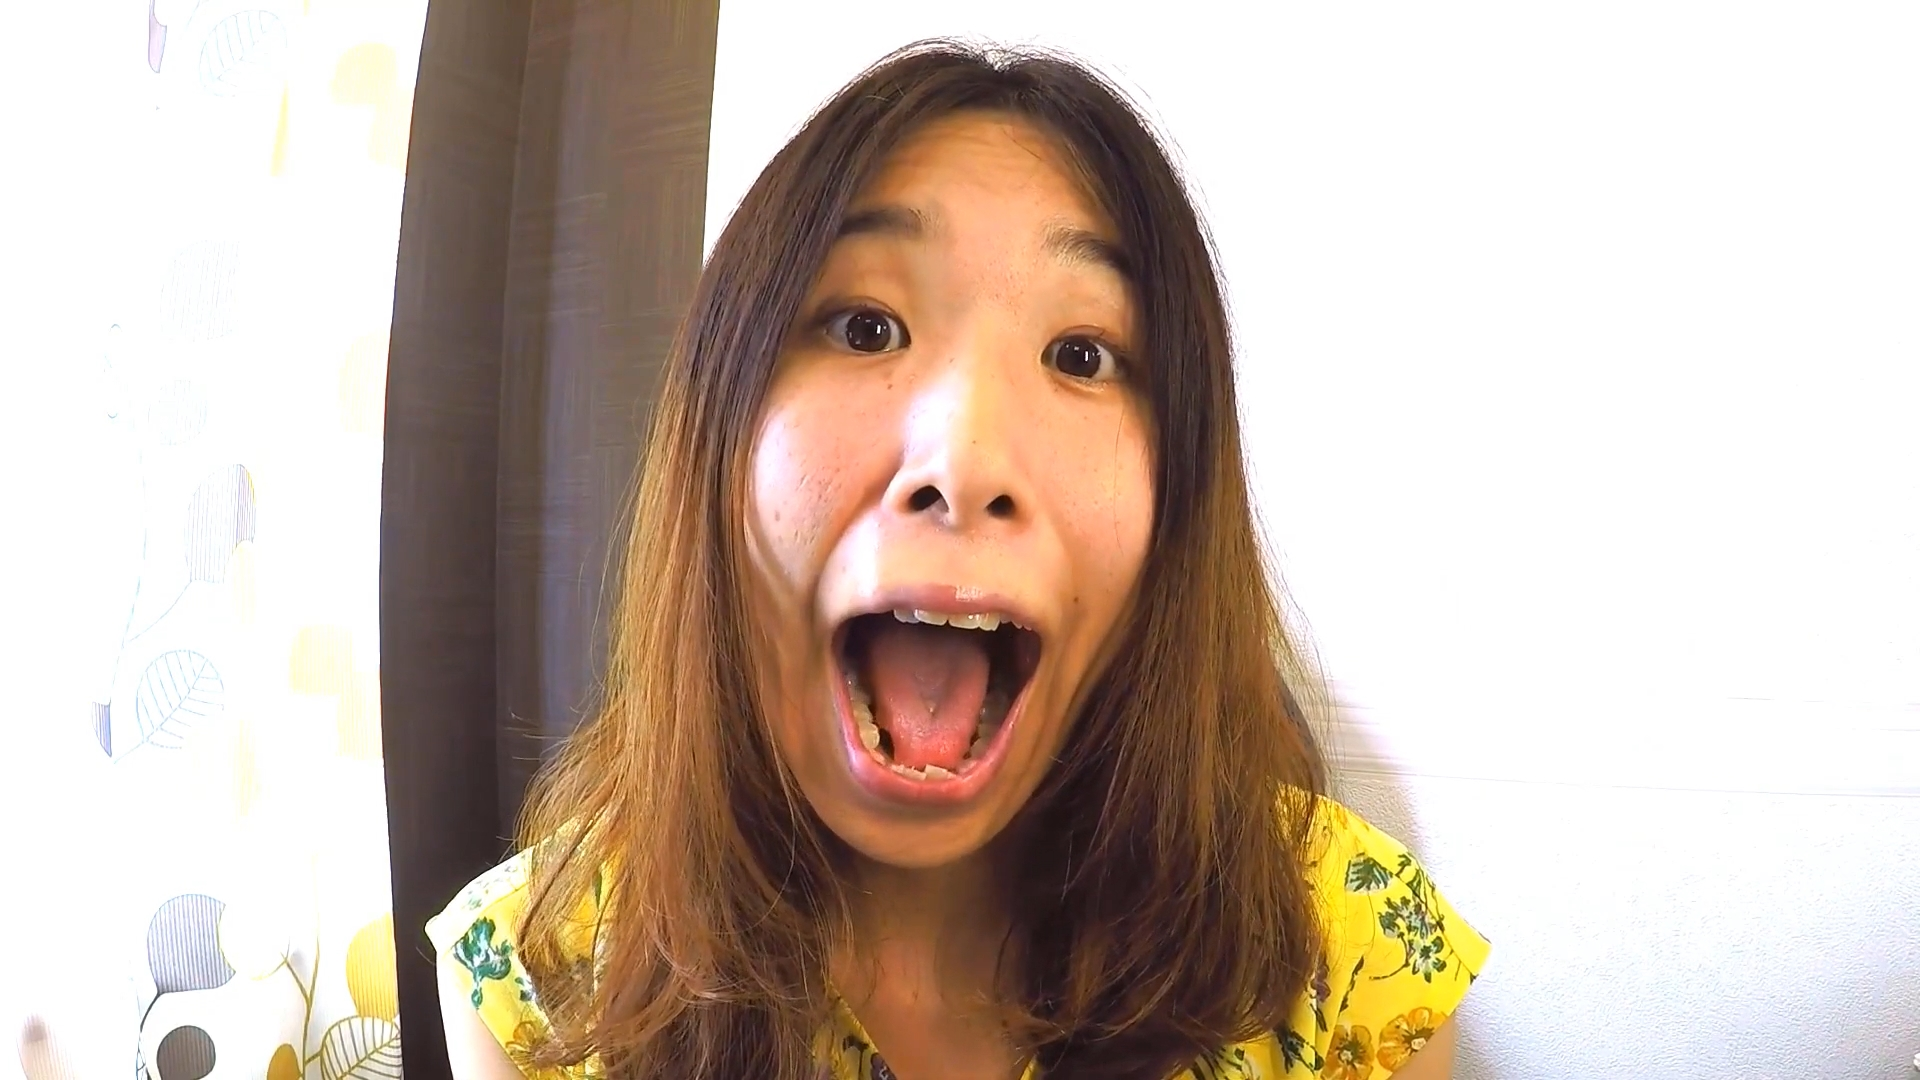 YouTuberの割れ汚舌 (22)